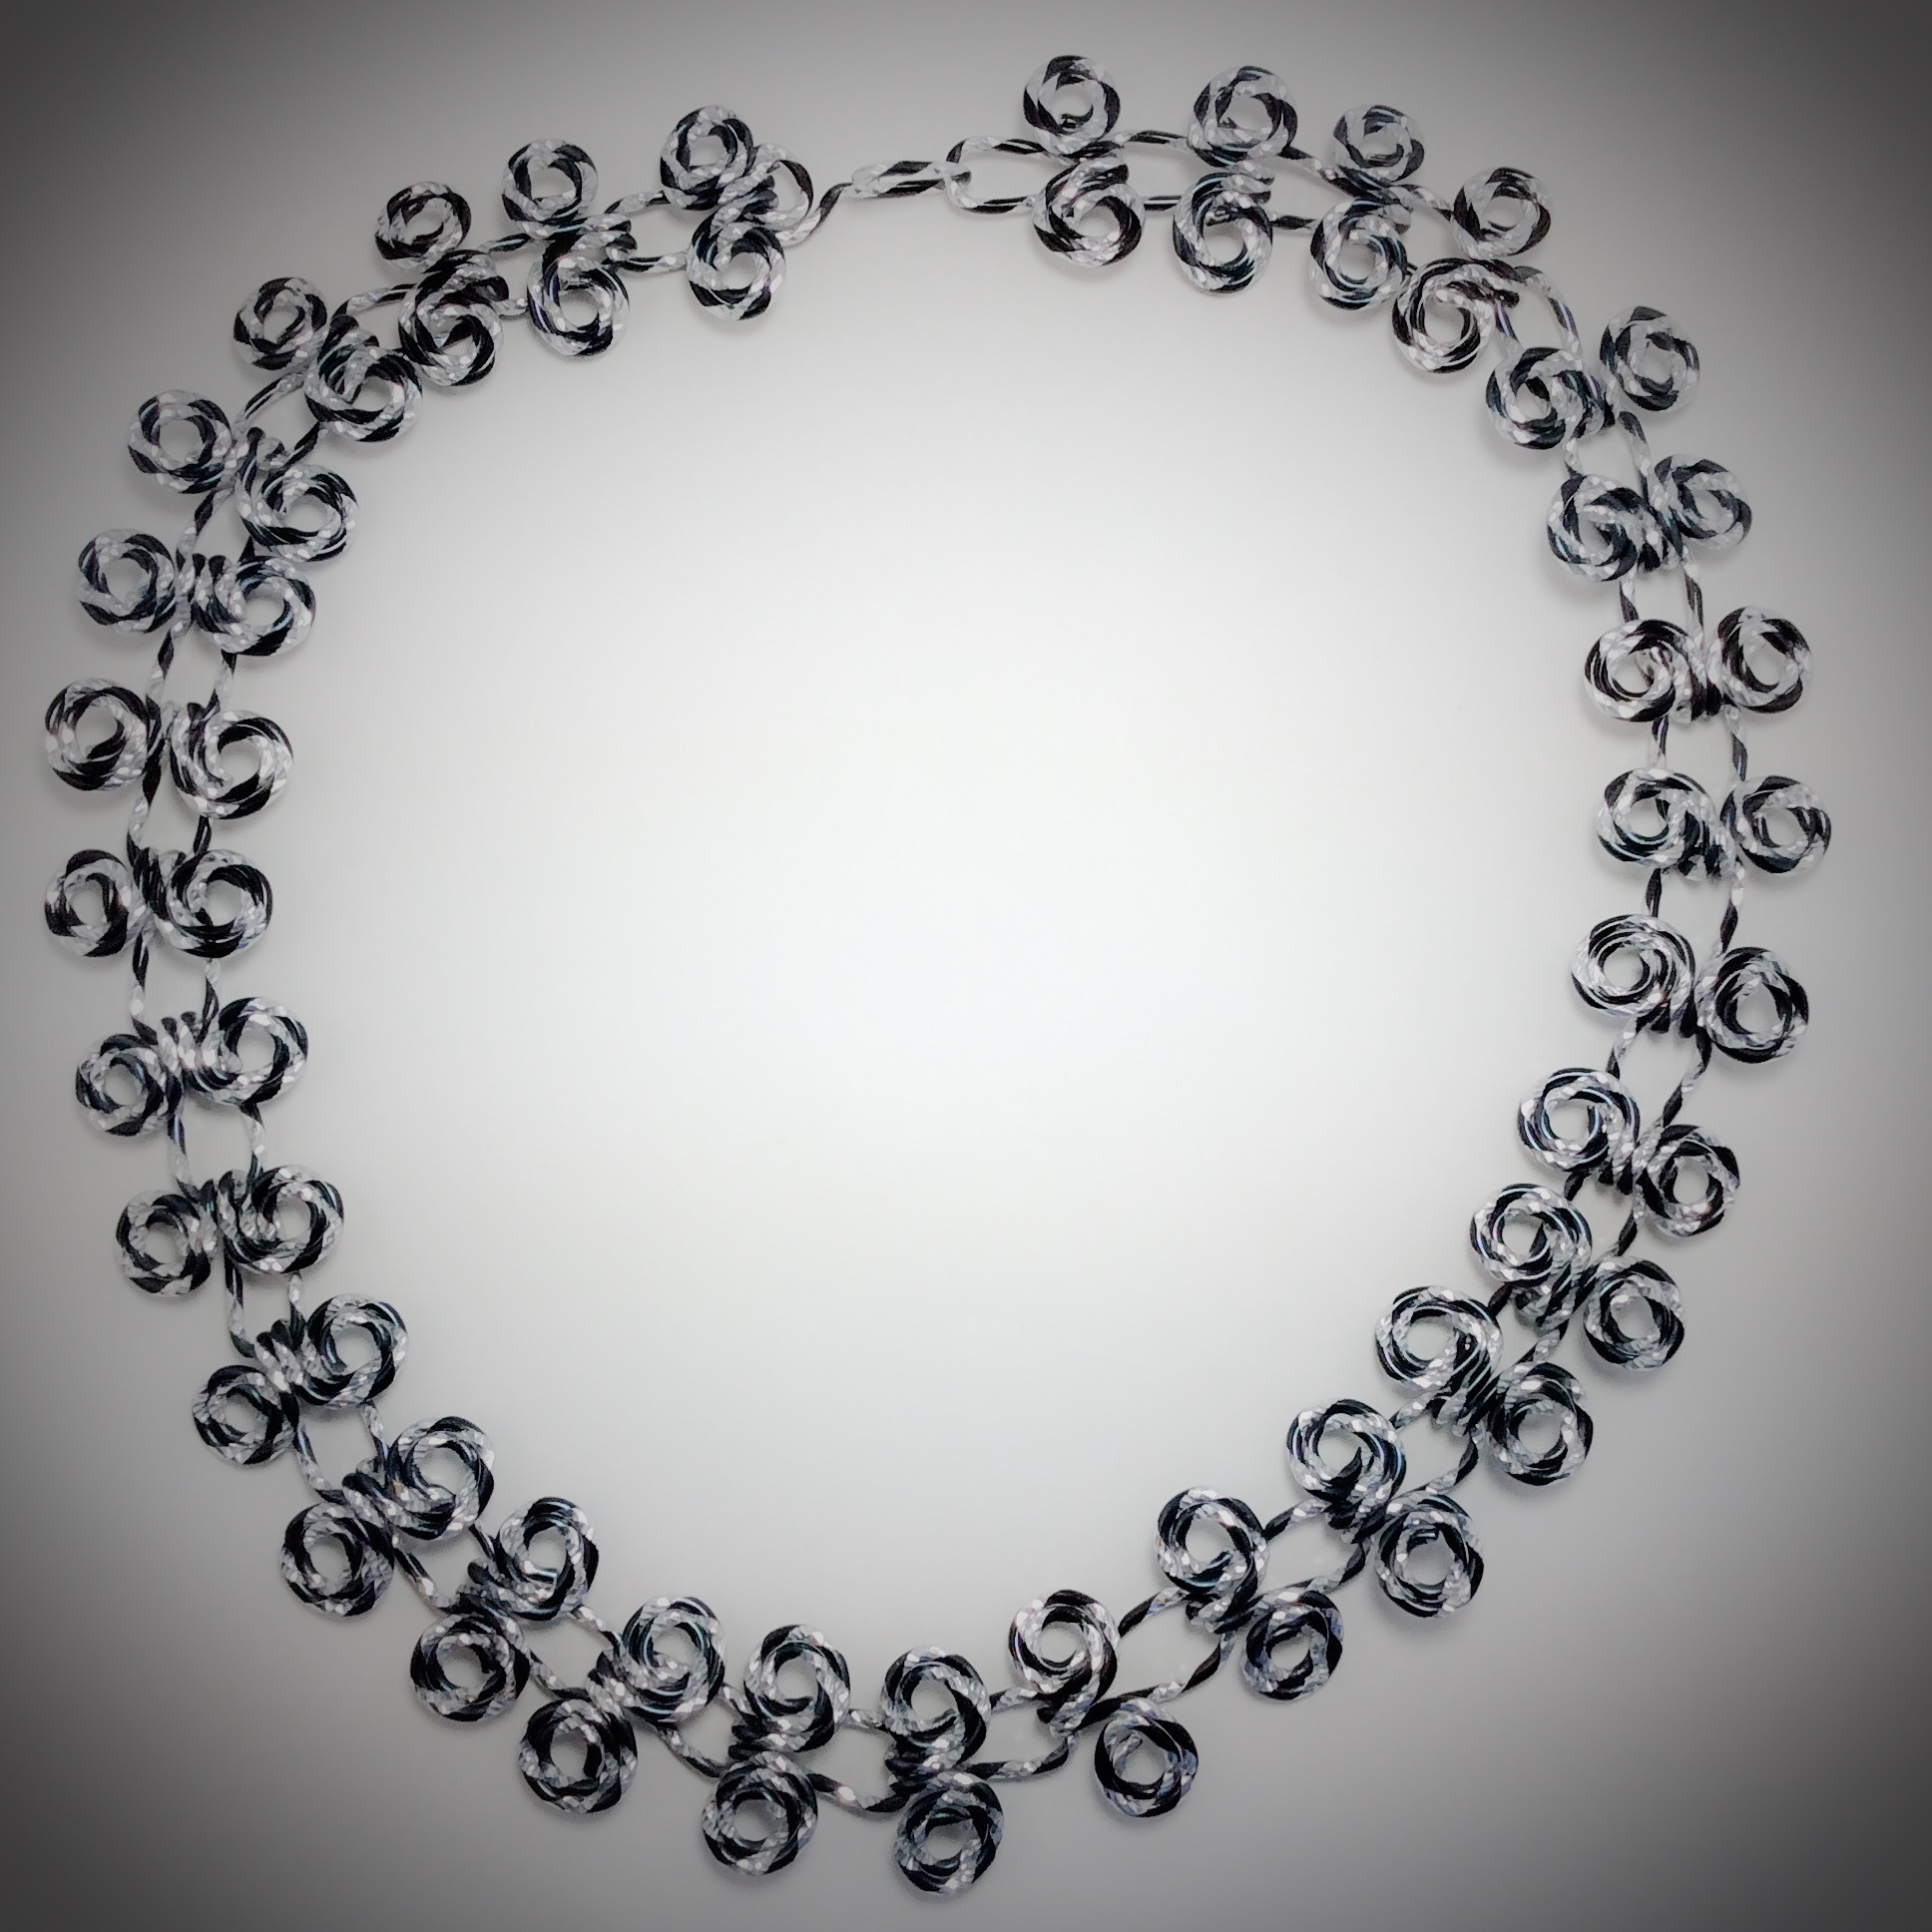 Aluminum - All Wired Up Jewelry